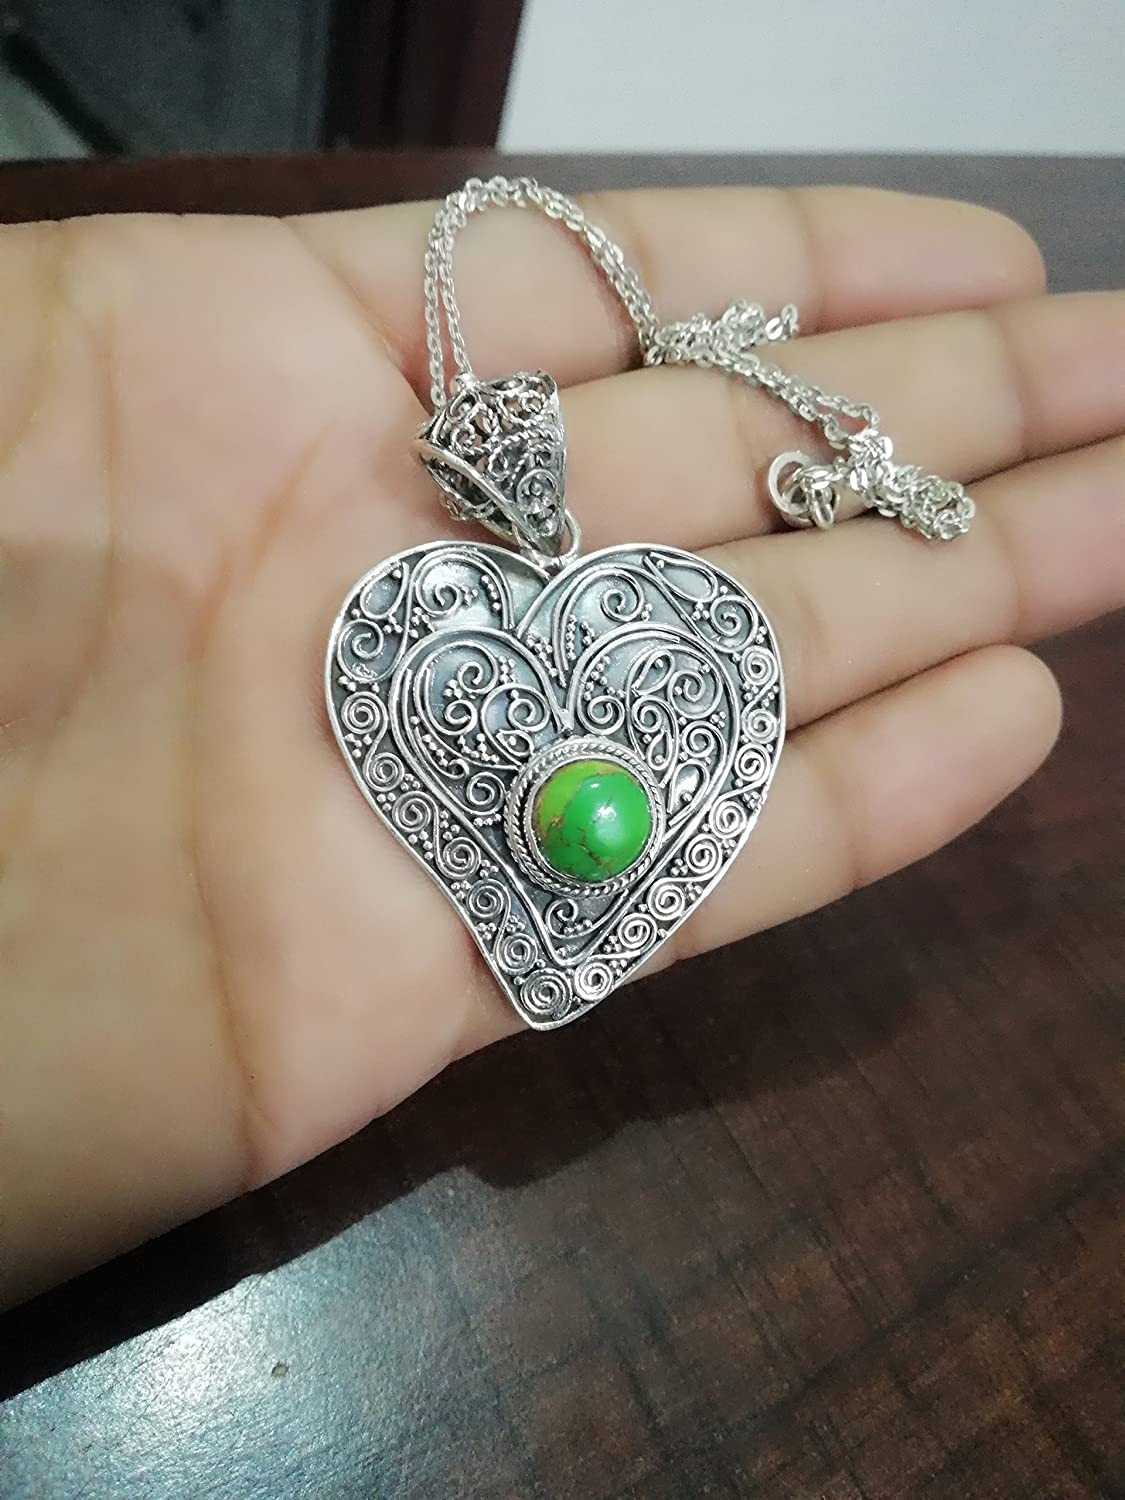 Green Turquoise Necklaces, 925 Sterling Silver Necklaces, Heart Shape Antique Necklaces, Artisan Necklaces, Boho Necklaces, December Birthstone, 11th Anniversary Necklaces, Elegant Necklaces, Mermaid Gift, Wedding Necklaces, Vintage Necklaces